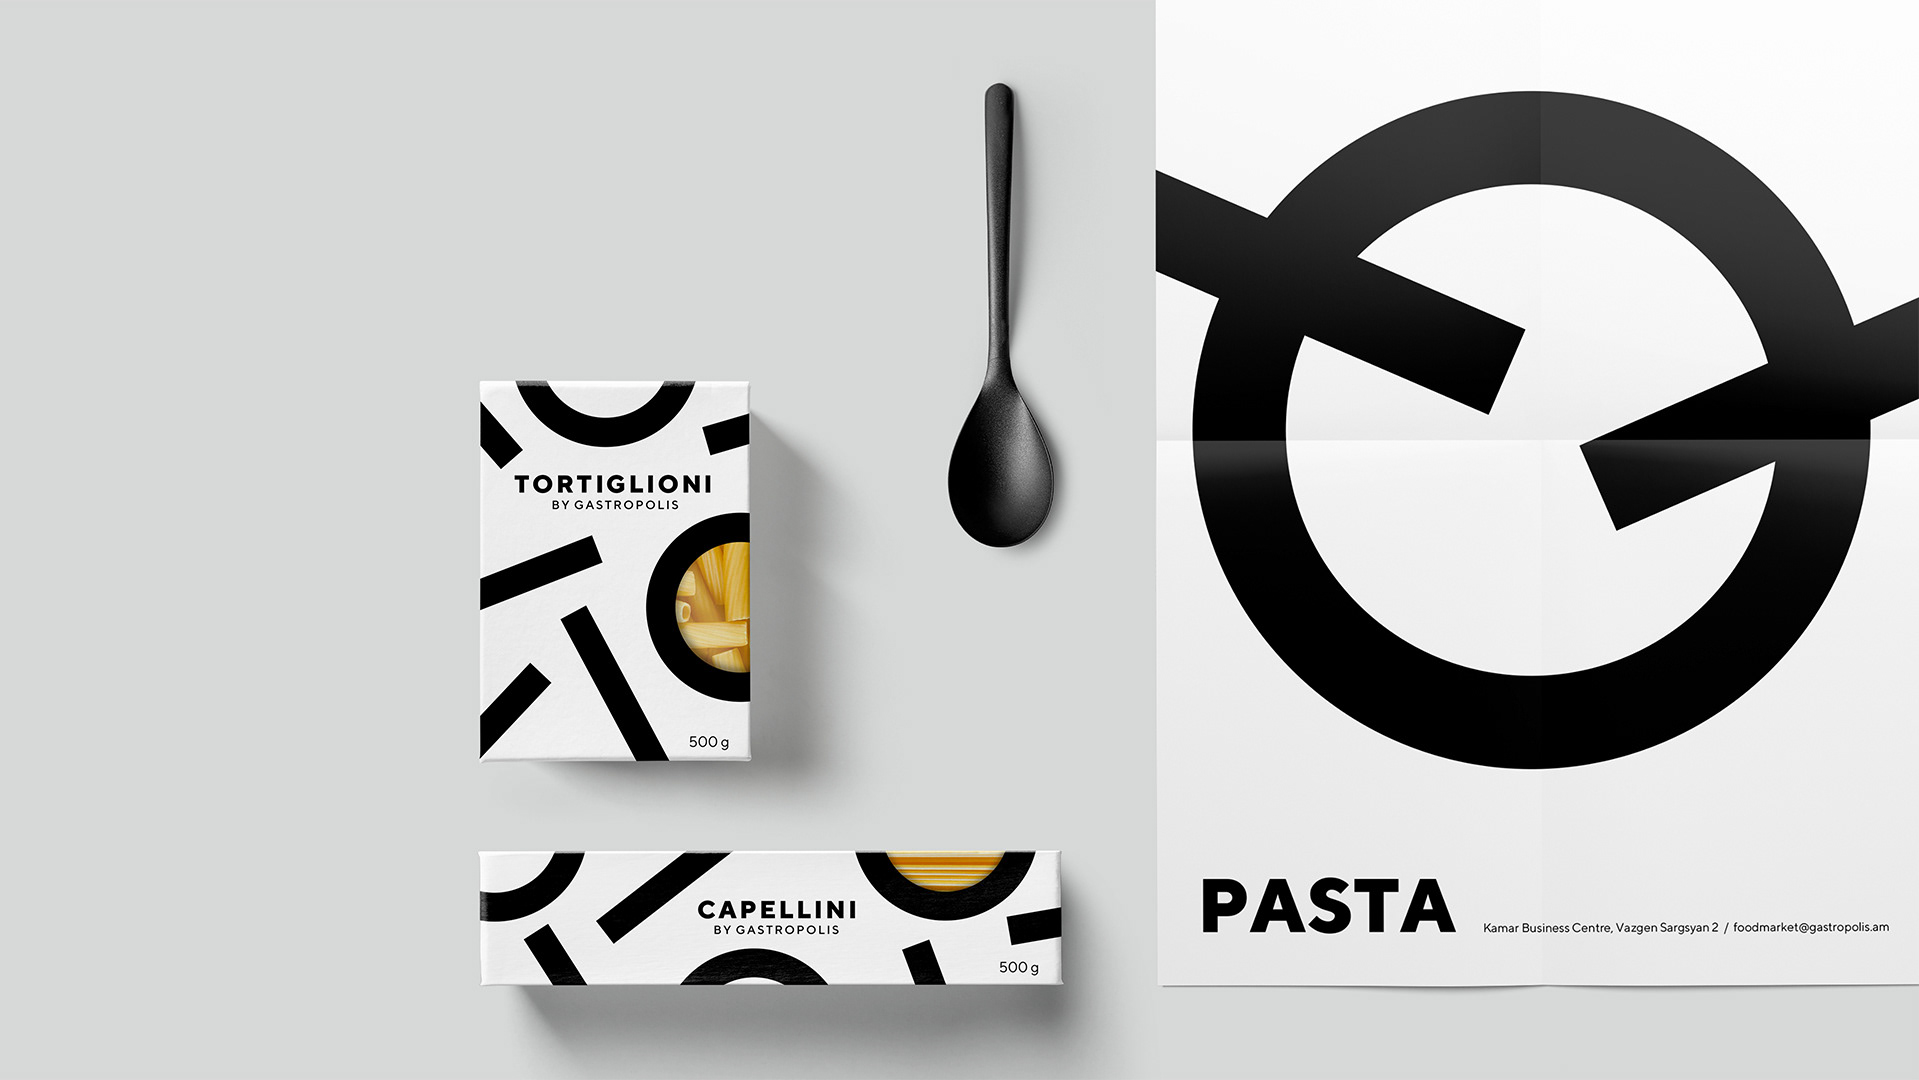 Gastropolis Food Market Branding By Formascope Design